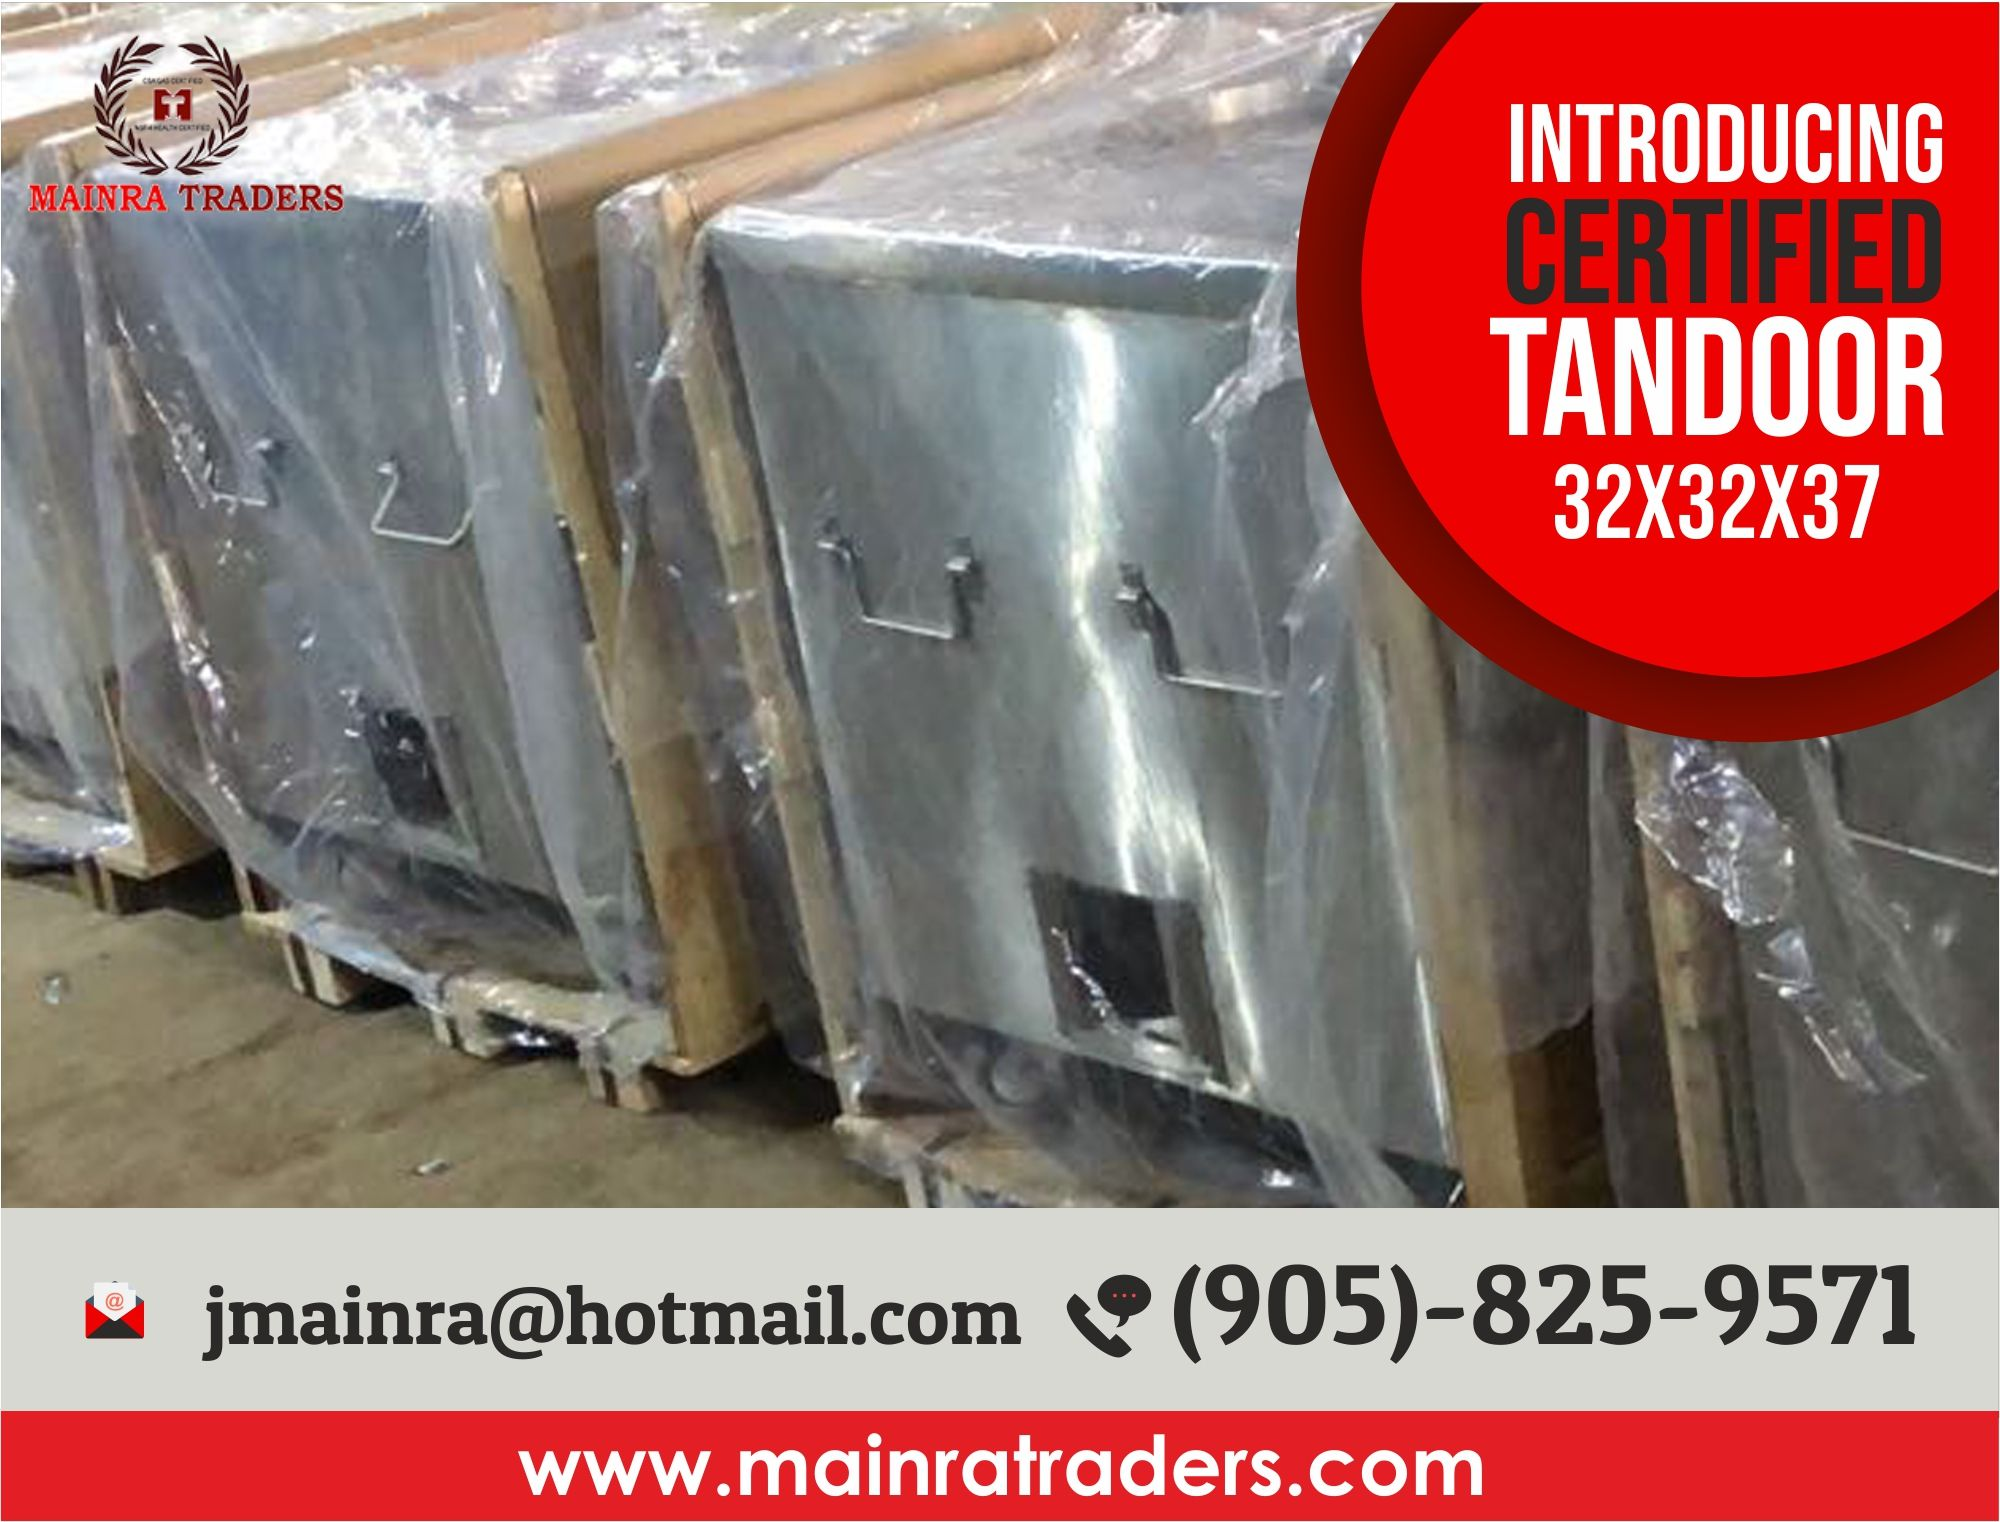 Pin On Certified Tandoor Suppliers In Canada